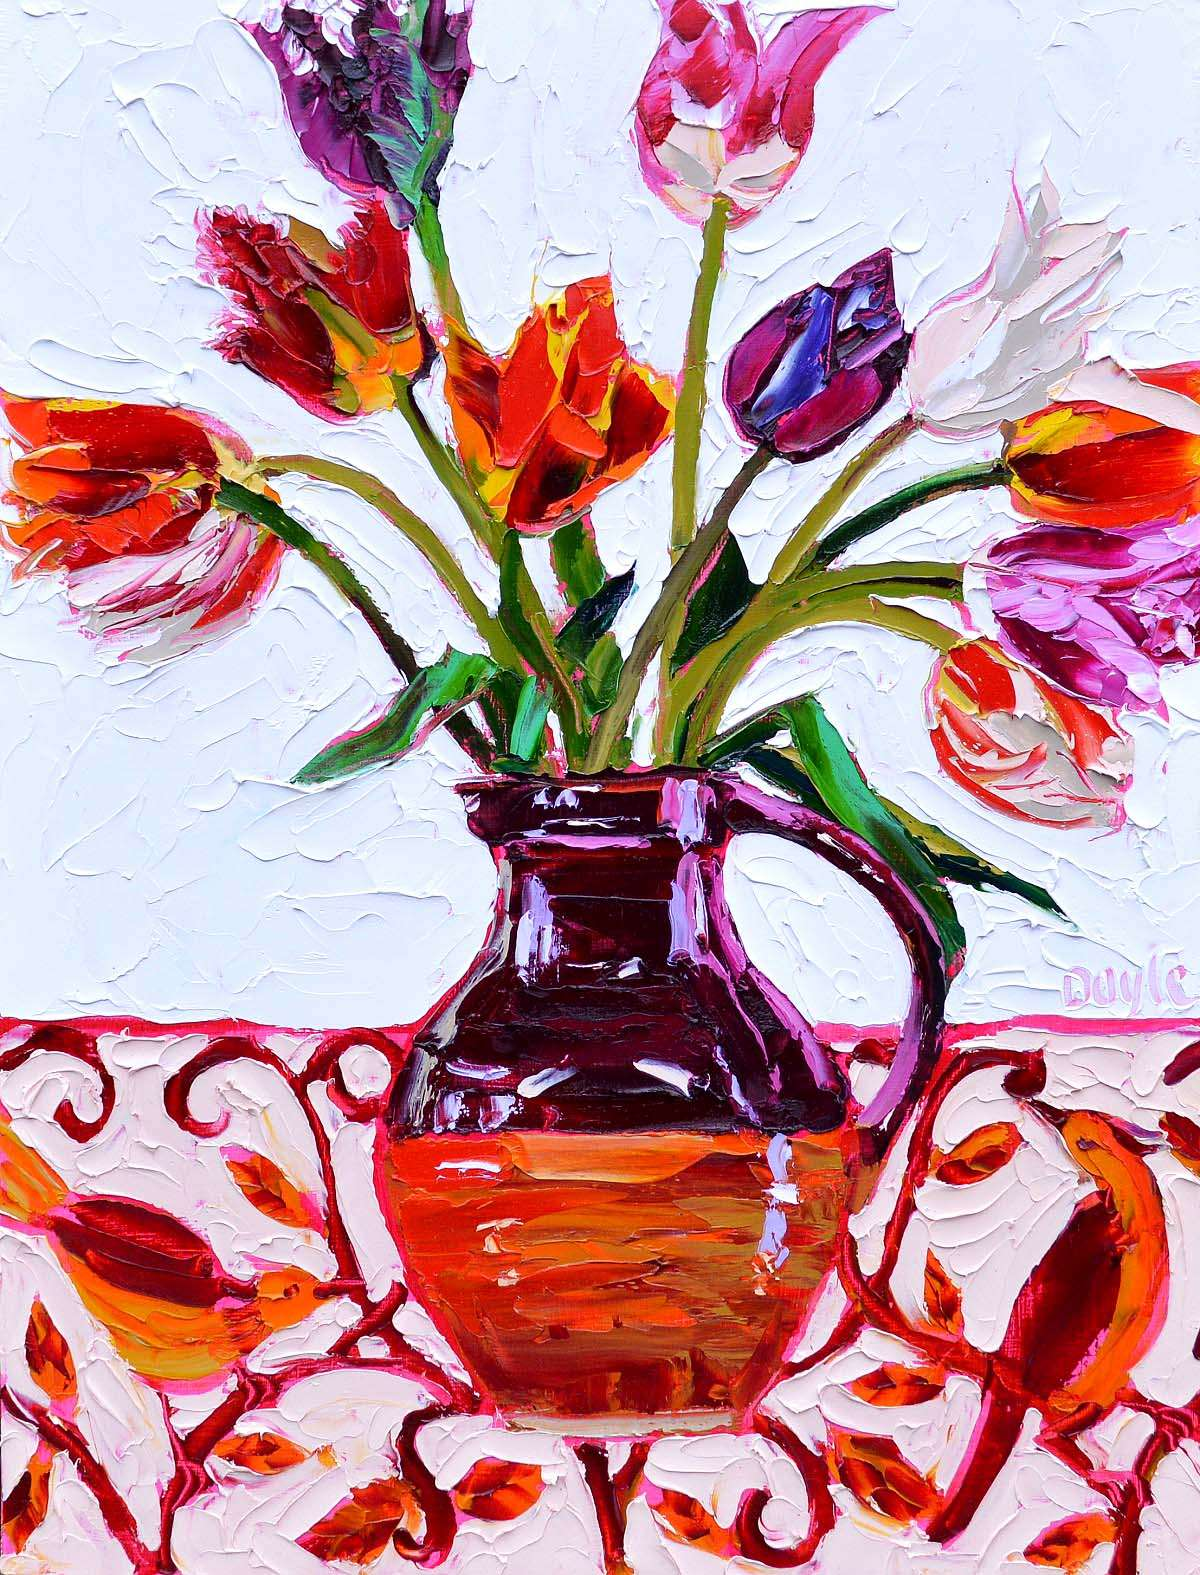 Lucy Doyle, 'Open Tulips', oil on canvas